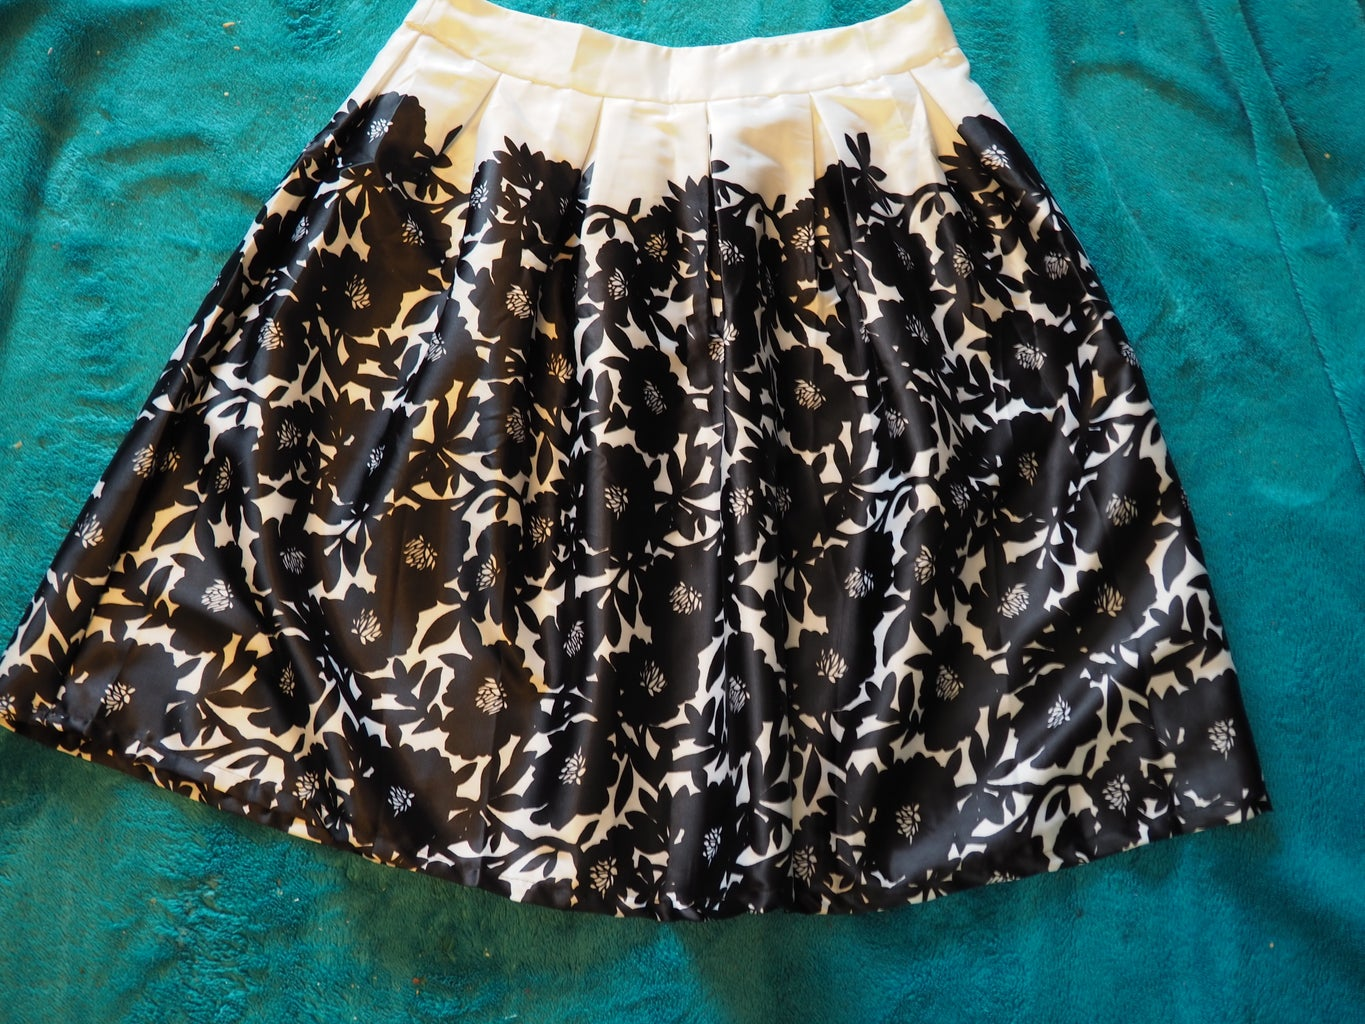 Top Made From a Skirt, Without Pattern